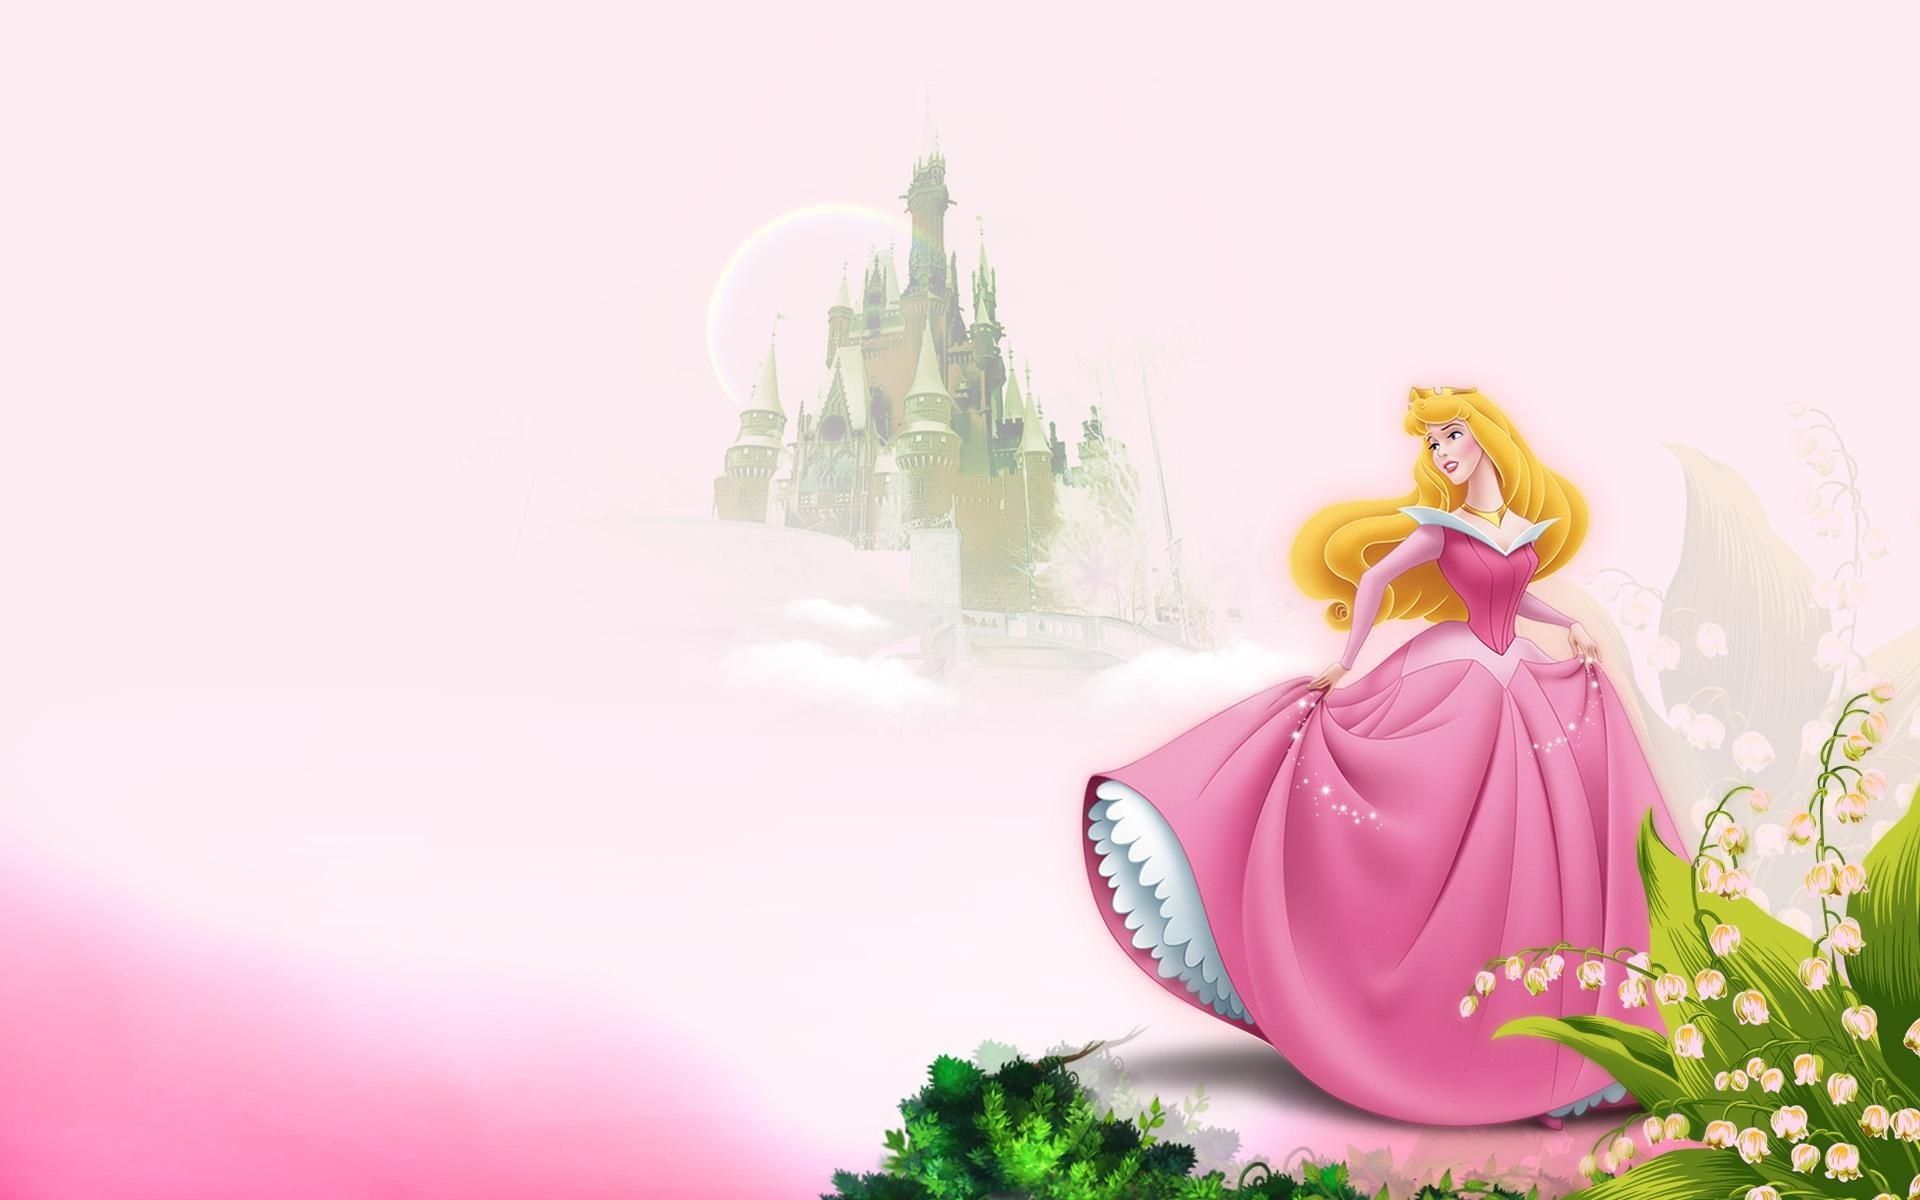 1920x1200 Disney Princess Wallpaper